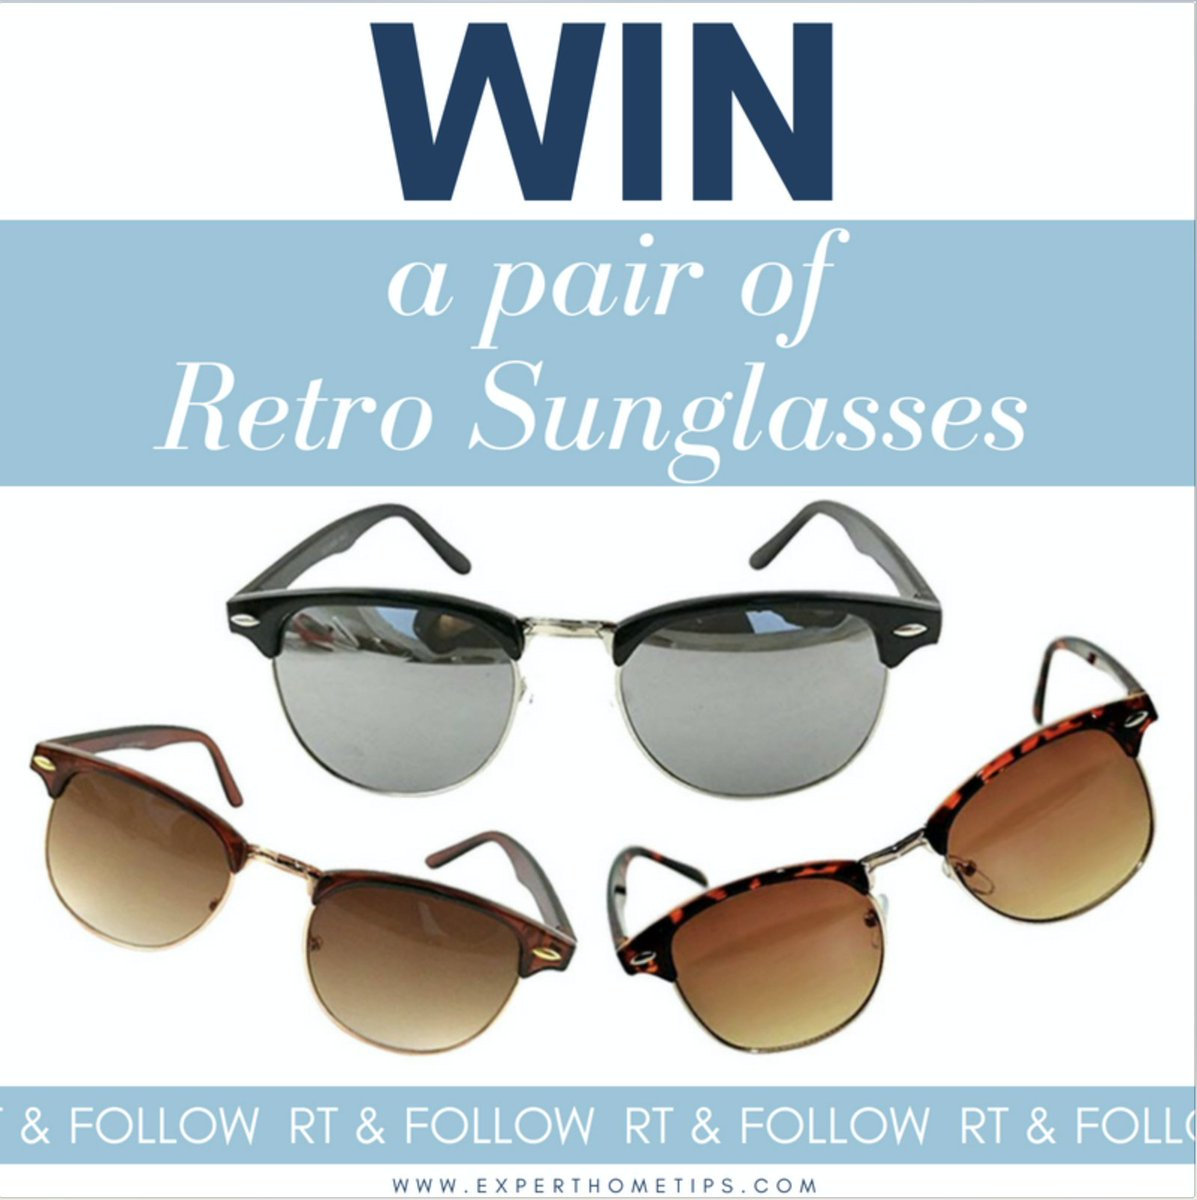 Don&#39;t forget to enter our competition to win 1 of 30 pairs of Retro Sunglasses &gt;&gt;  http:// bit.ly/2uTWOeQ  &nbsp;       RT &amp; FOLLOW @ExpertHomeTips  Who wants to win this #WinItWednesday?!<br>http://pic.twitter.com/HQ5ApICB96